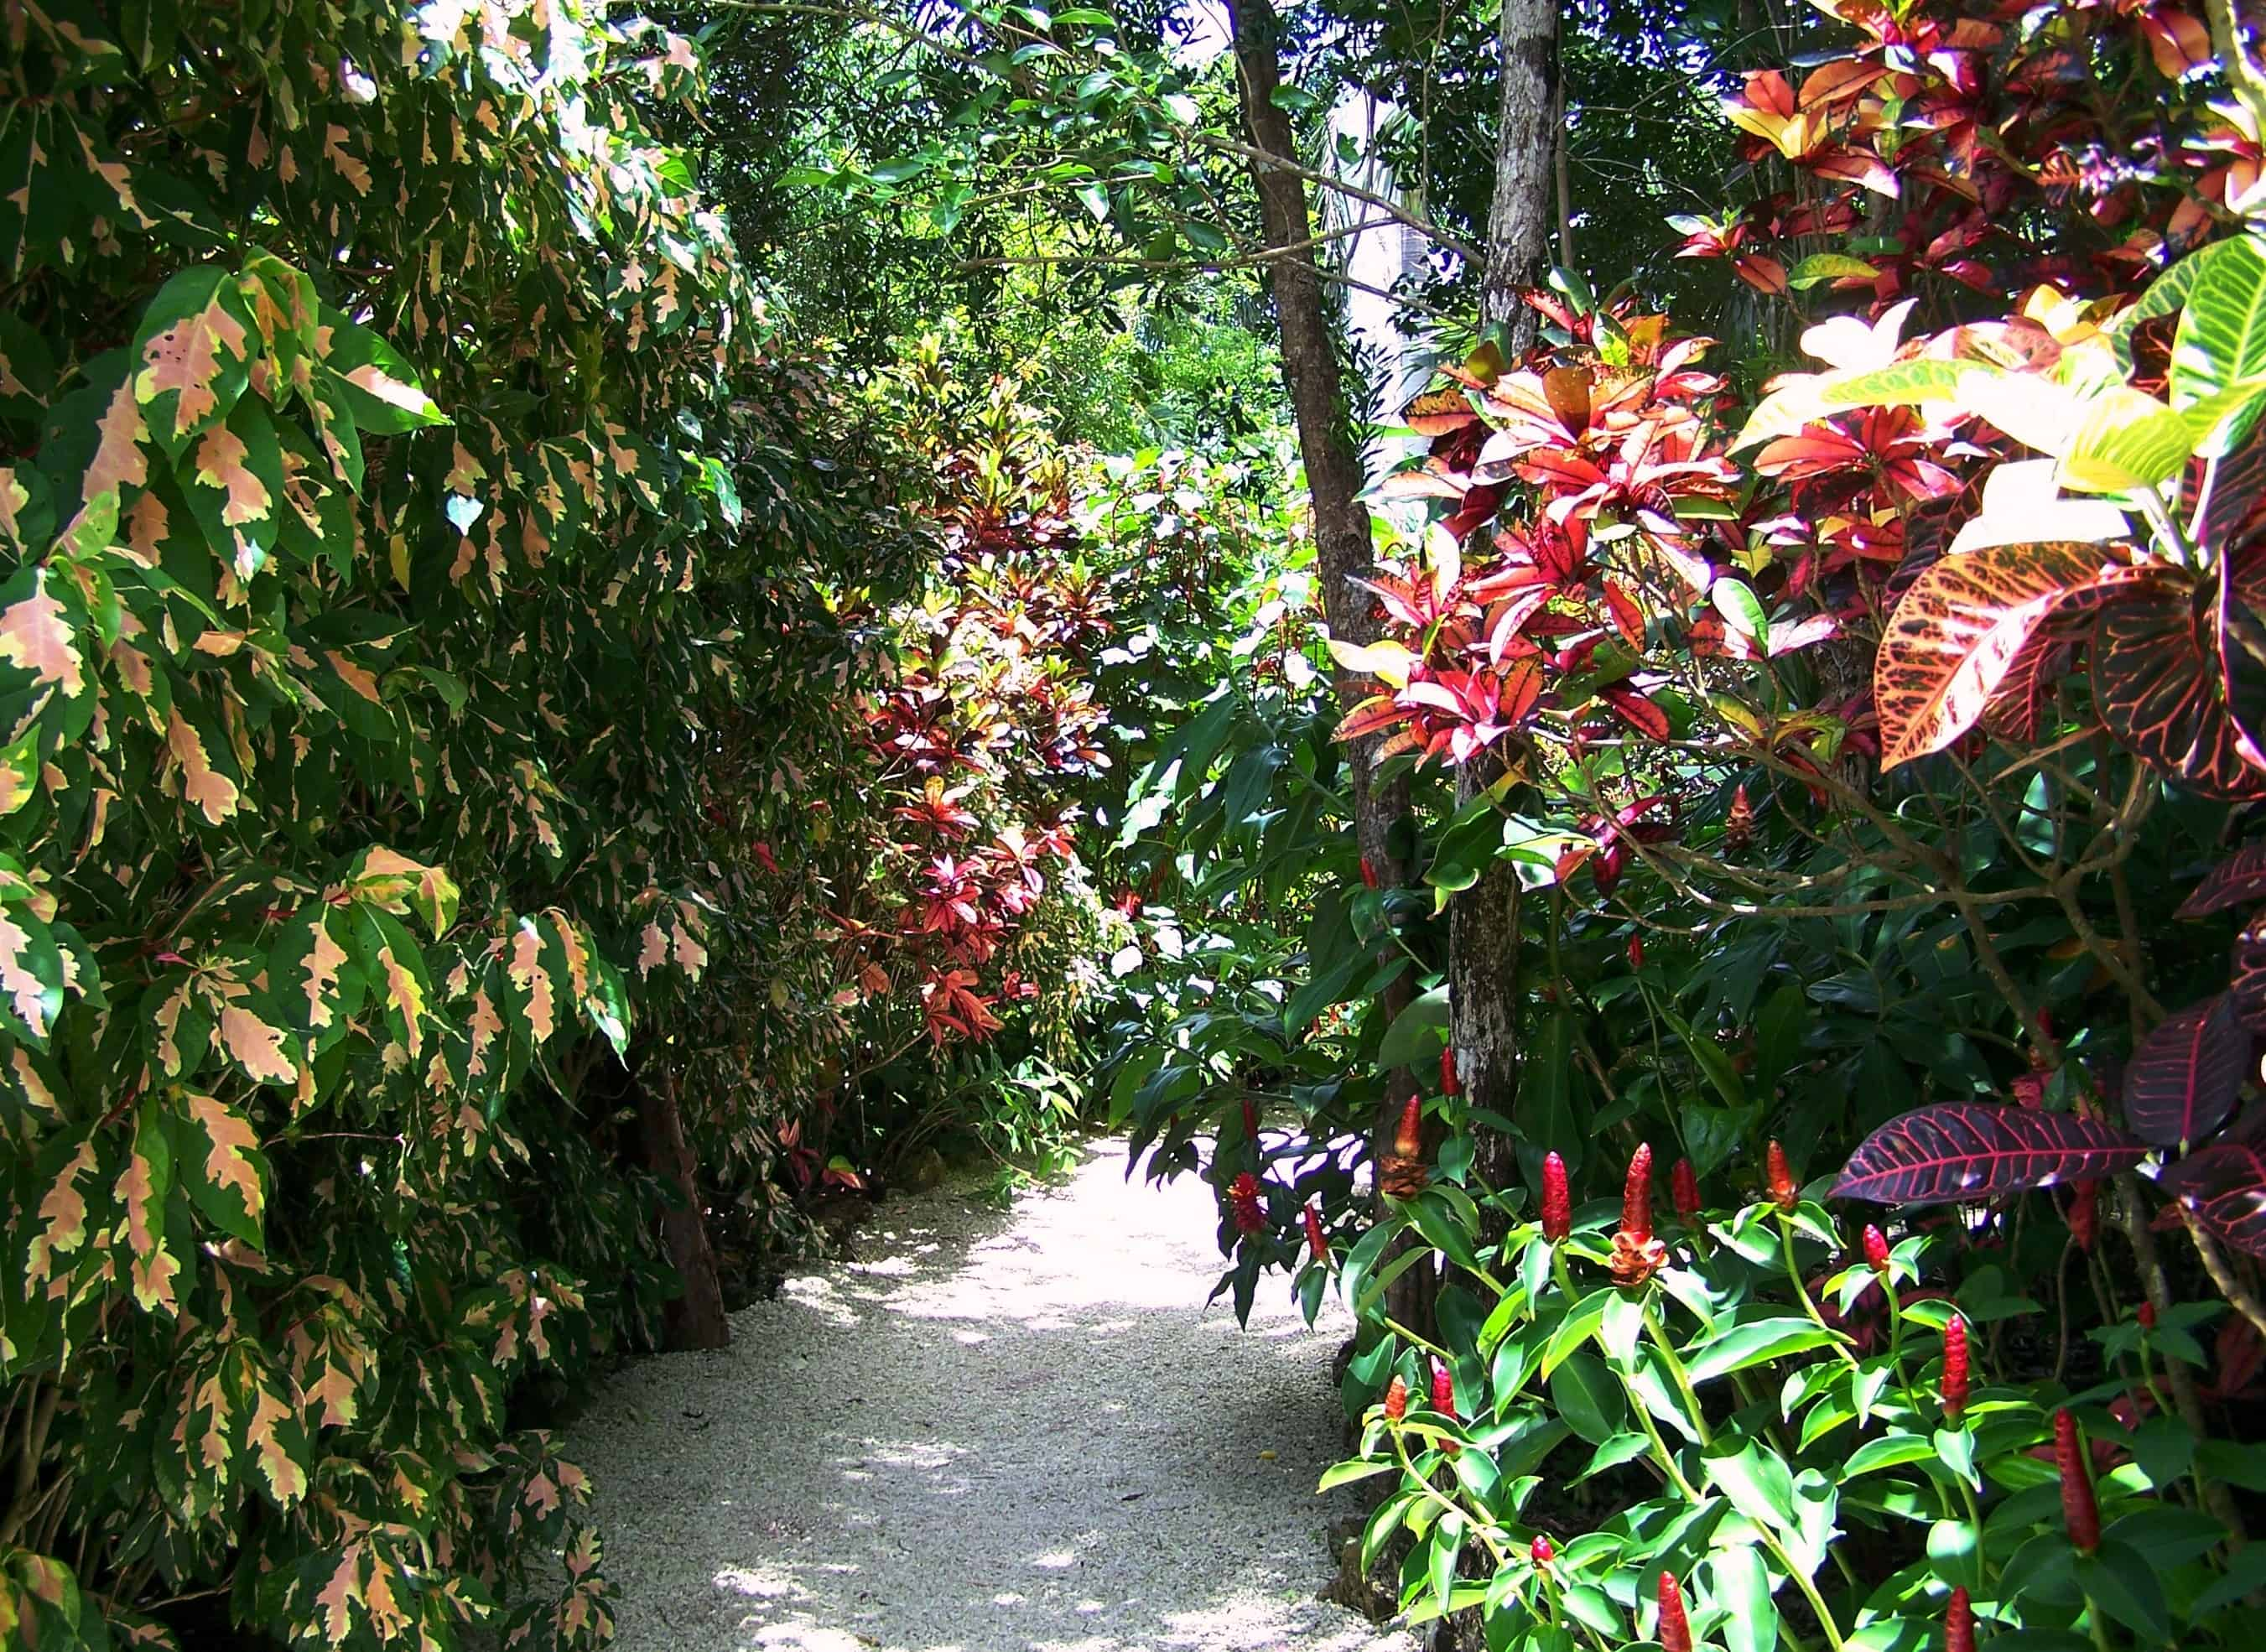 Queen Elizabeth II Botanical Park - Cayman Islands With Kids